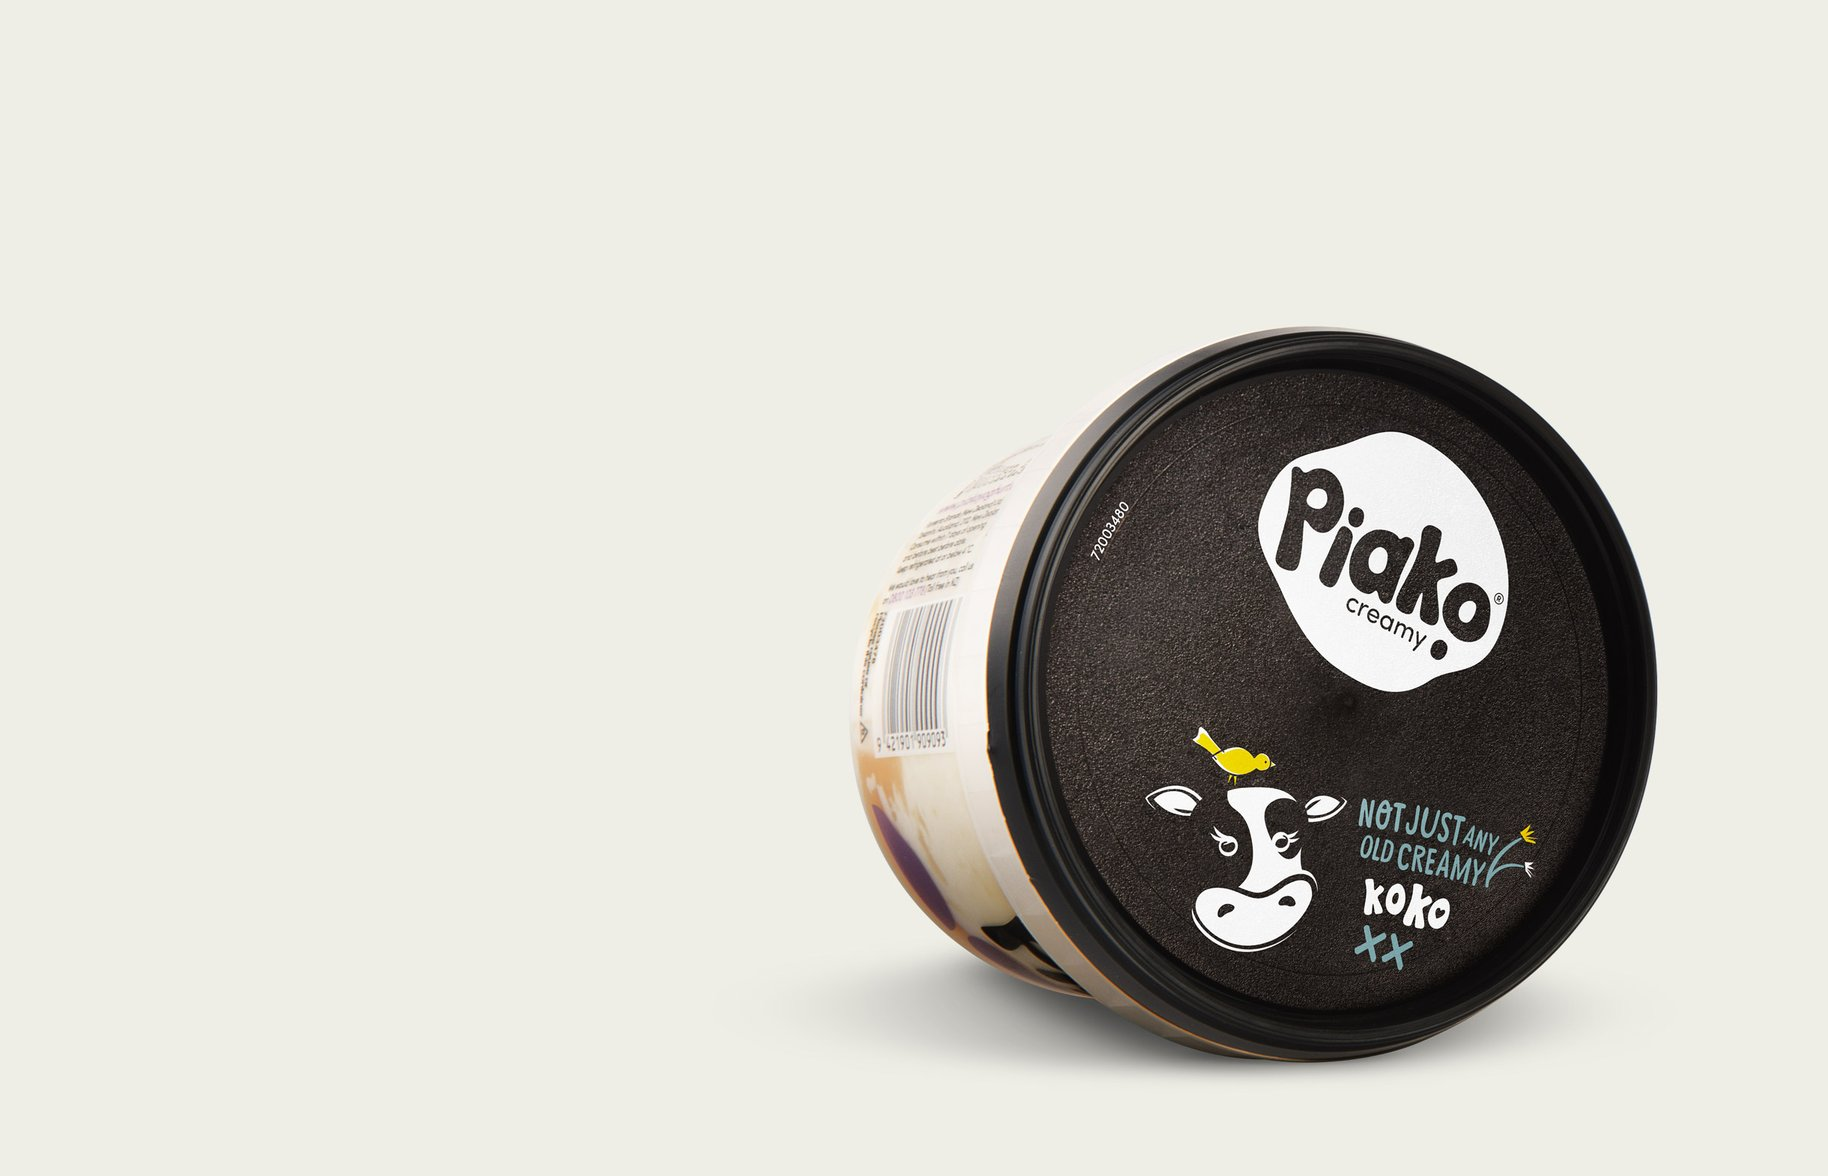 Piako Creamy yoghurt packaging lid